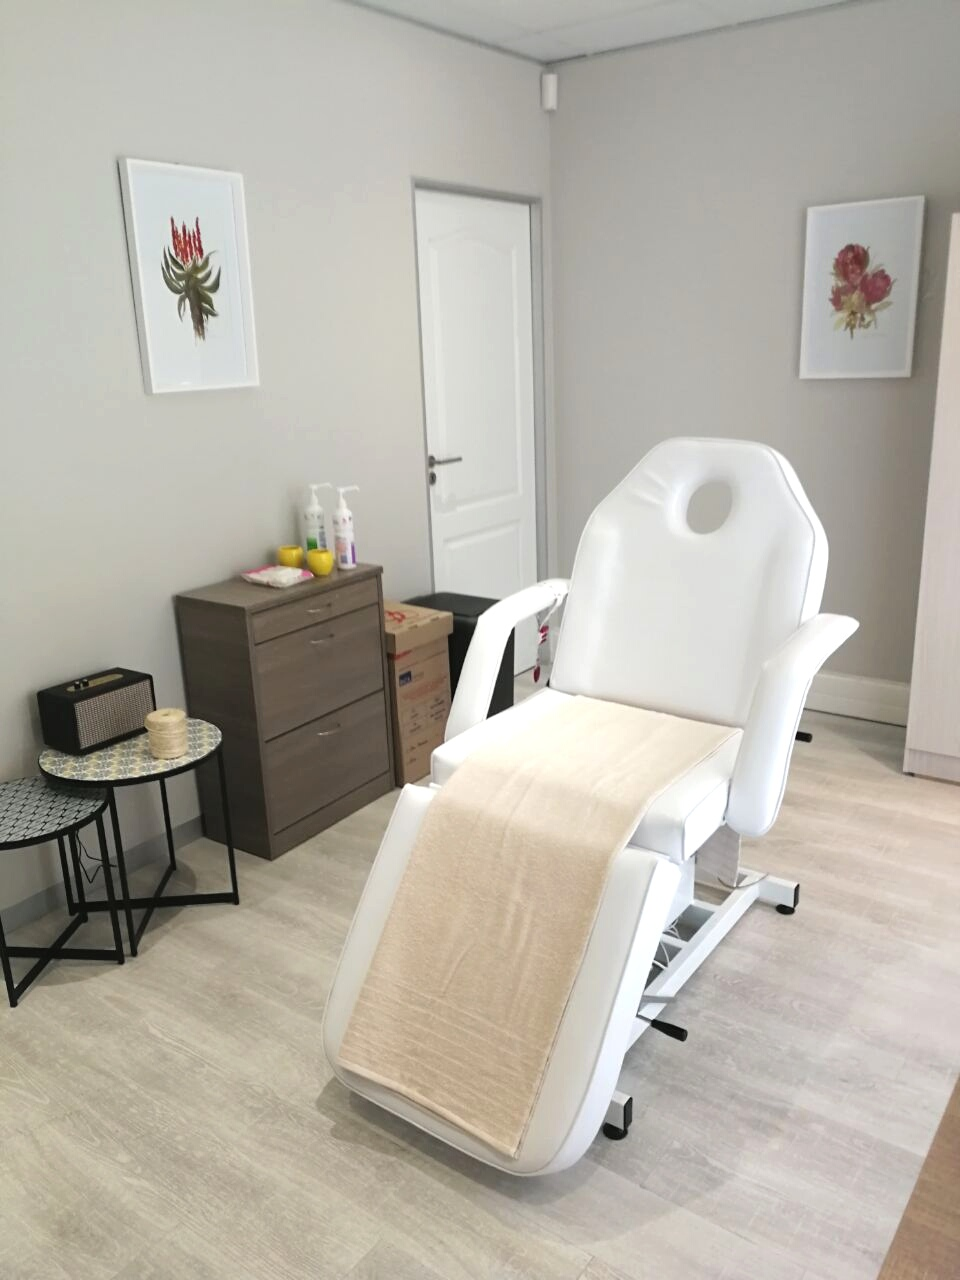 Our Skincare Therapy room in Somerset West.